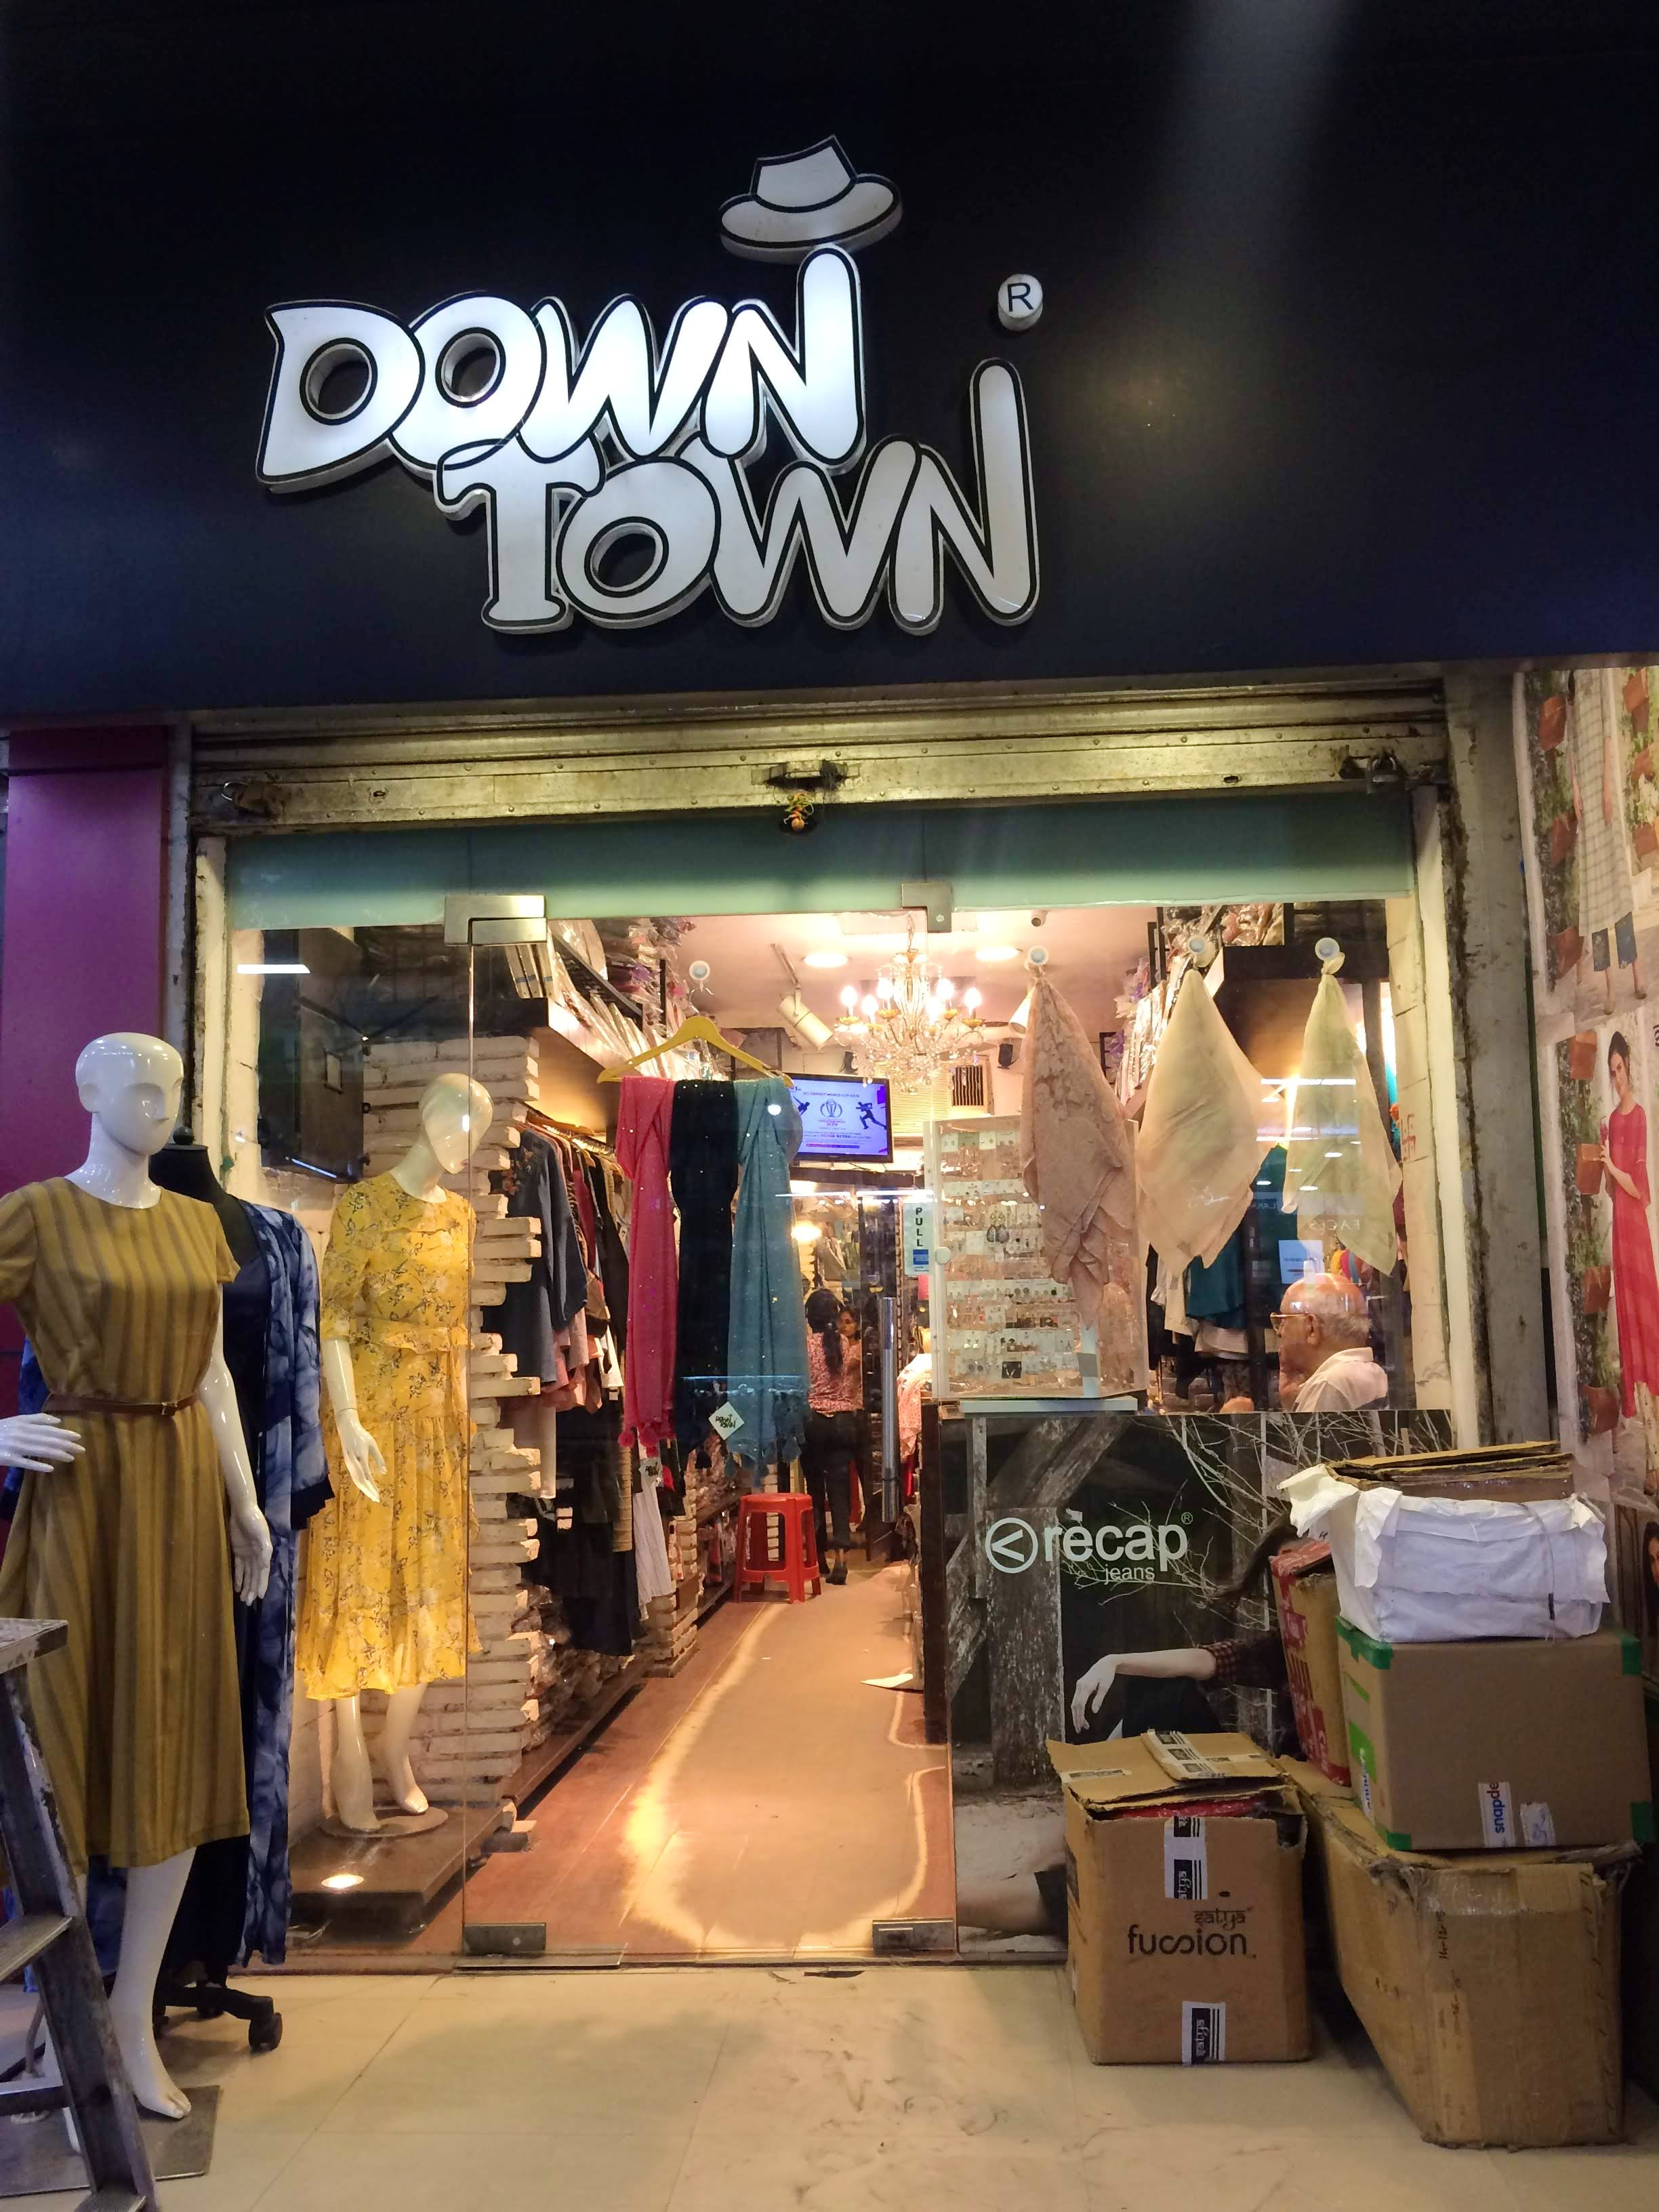 Boutique,Outlet store,Retail,Building,Bazaar,Shopping,Display window,Night,Marketplace,Street